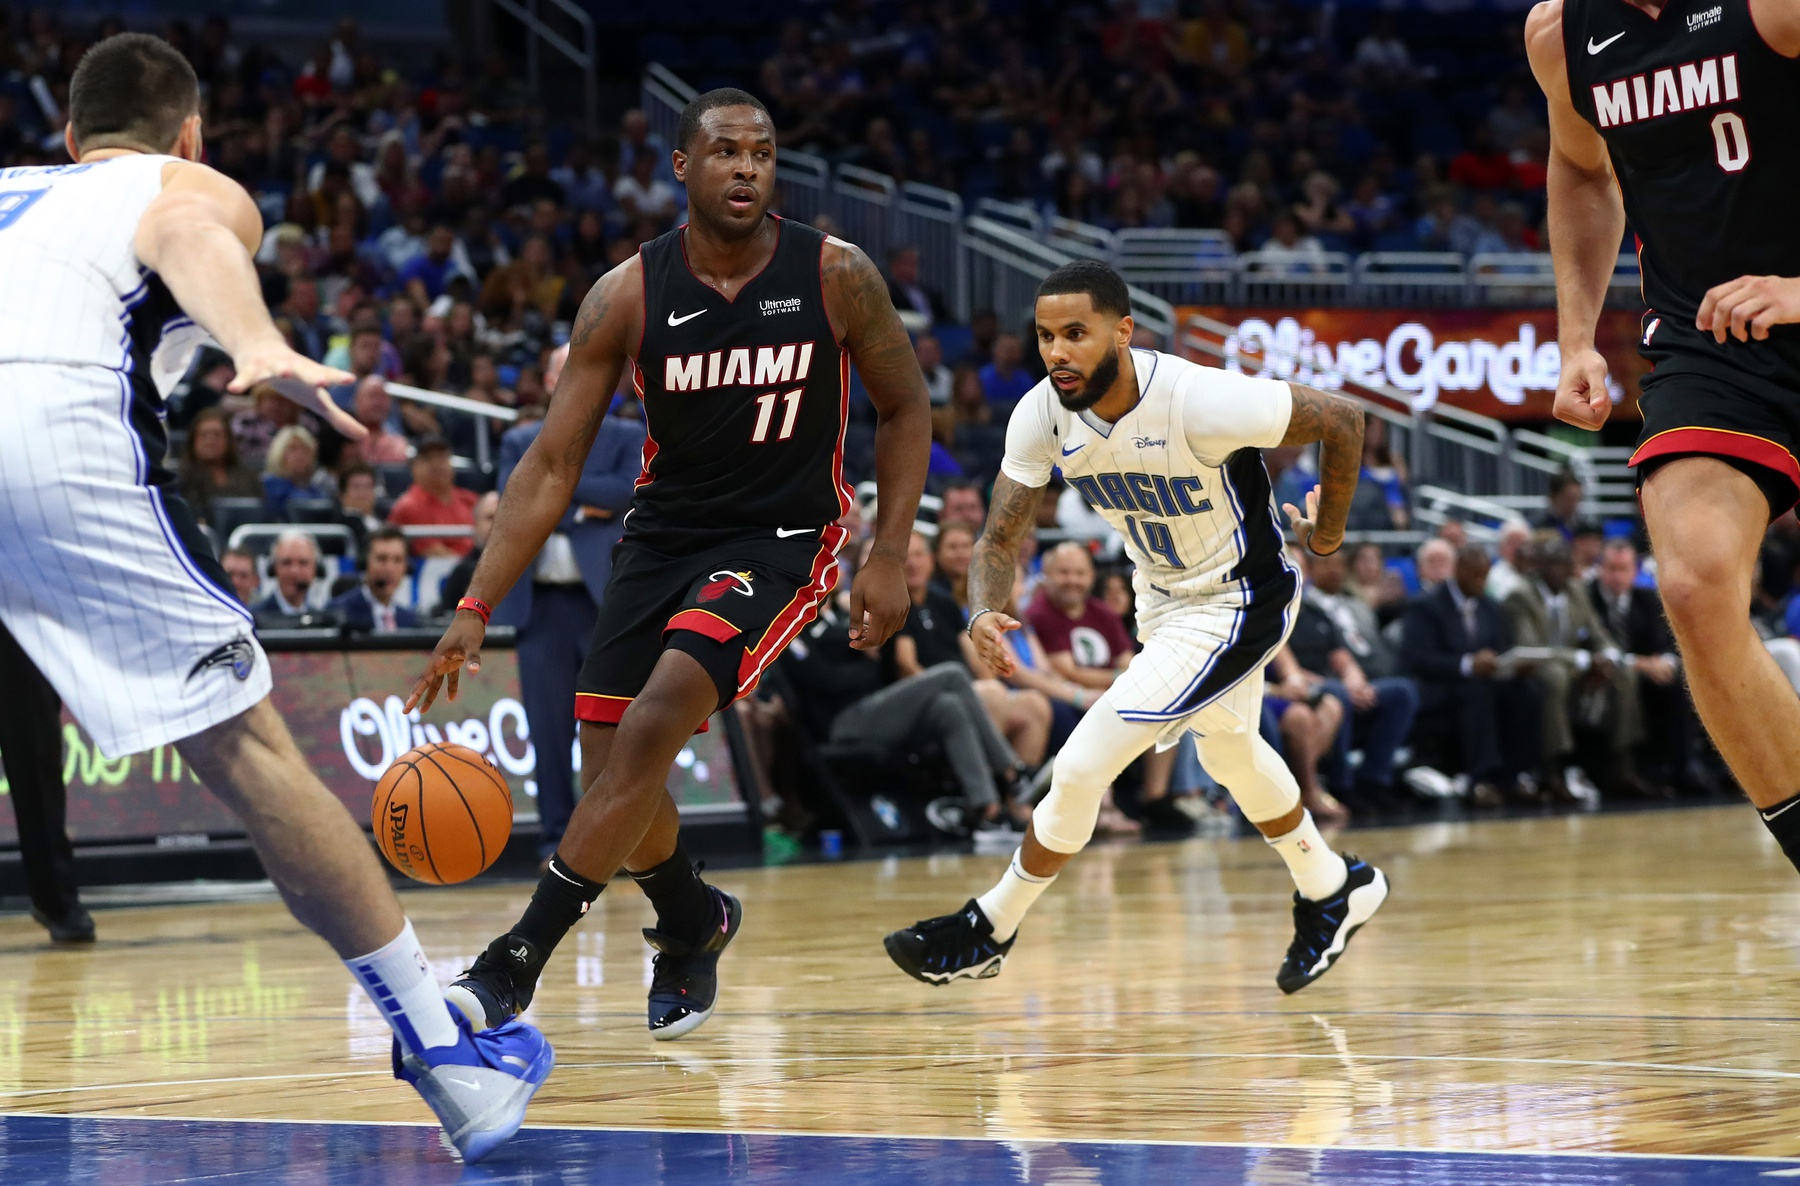 Dion Waiters makes first appearance for Miami Heat this season